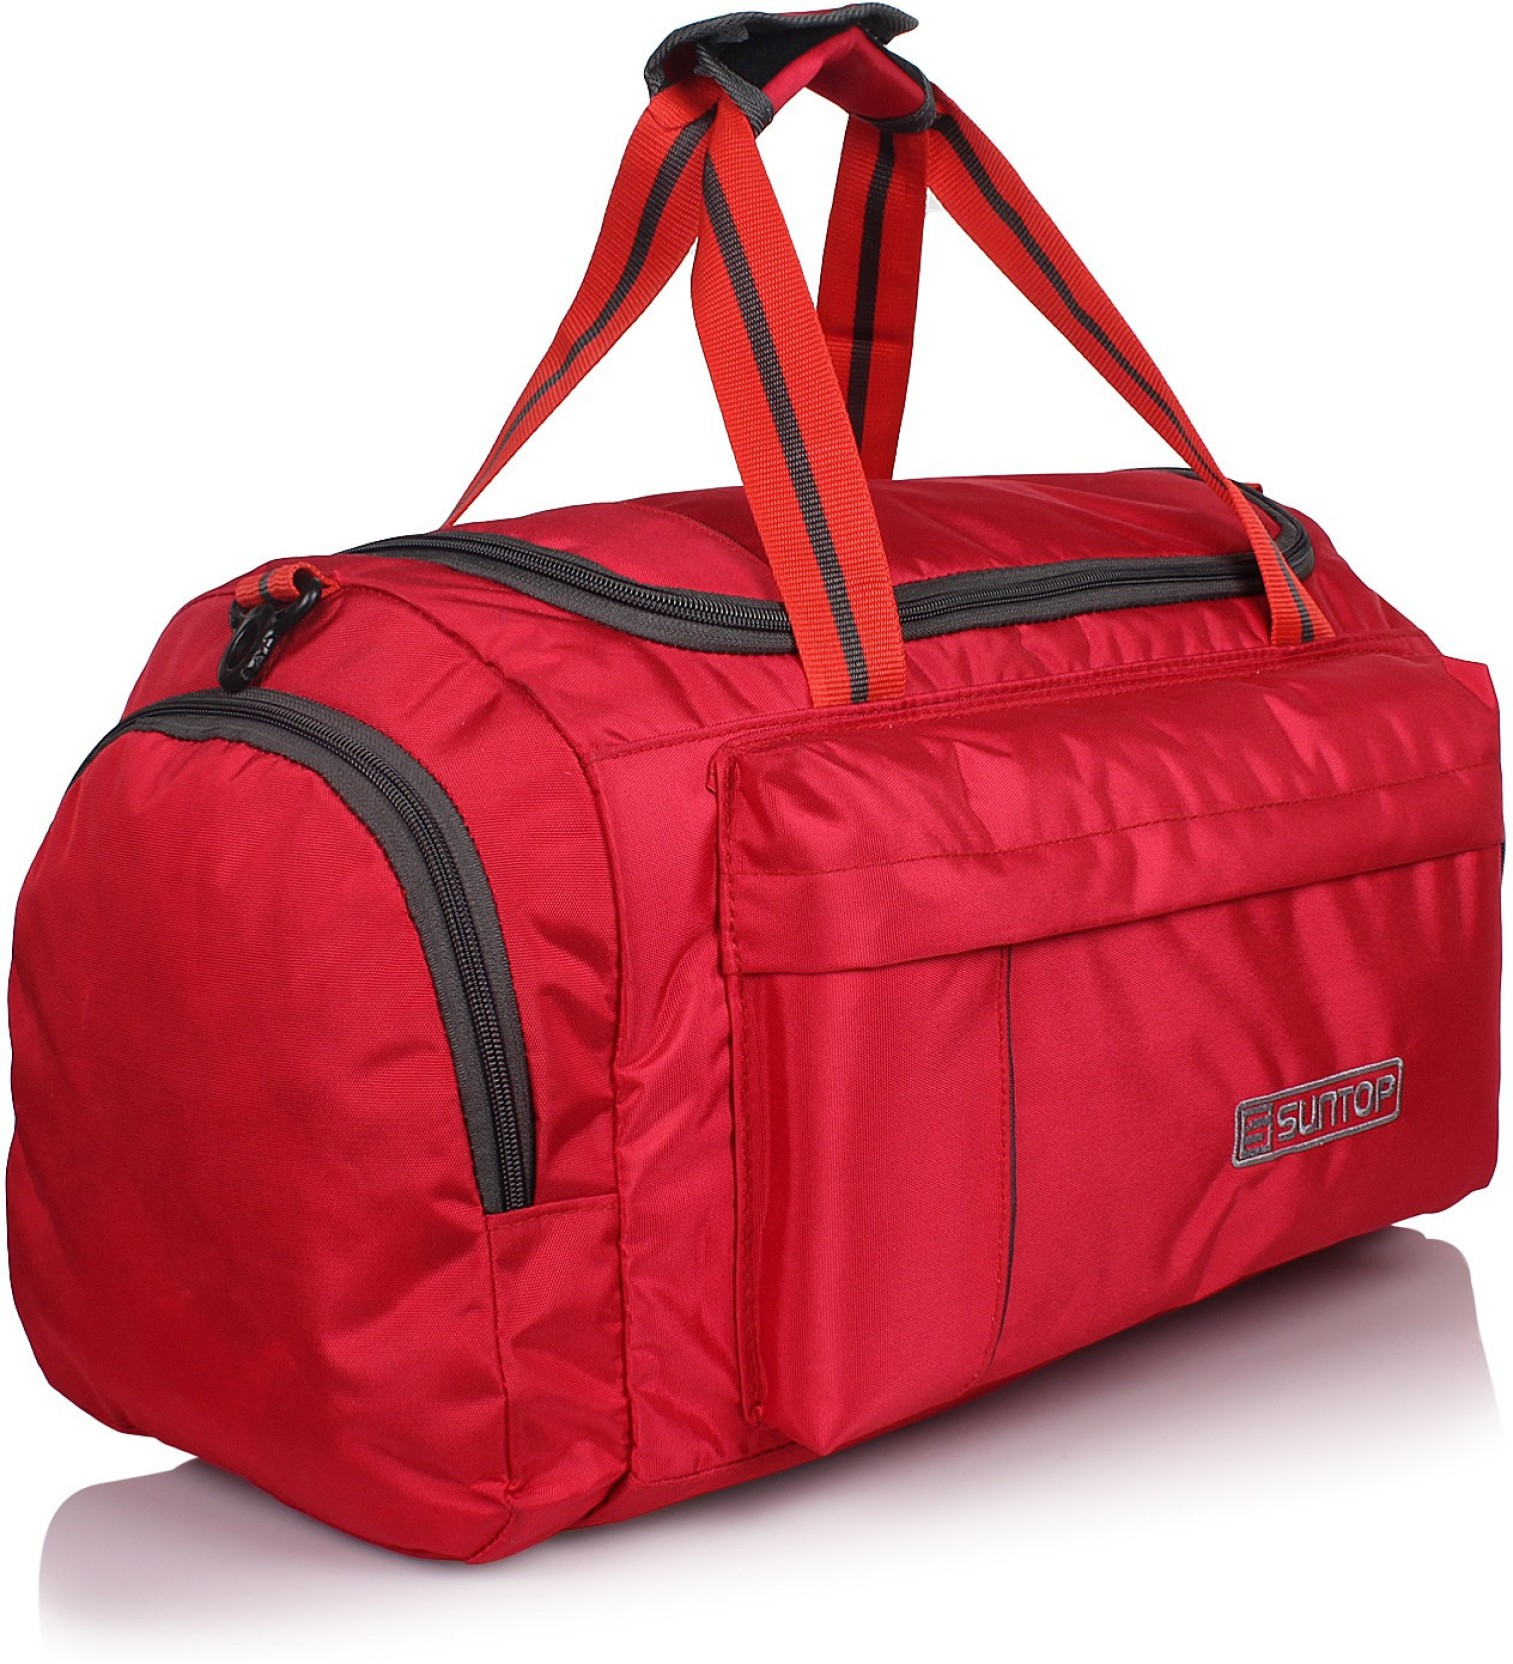 Gym Bag Flipkart: Suntop Alive Travel/Gym/Fitness 20 Inch/50 Cm Travel